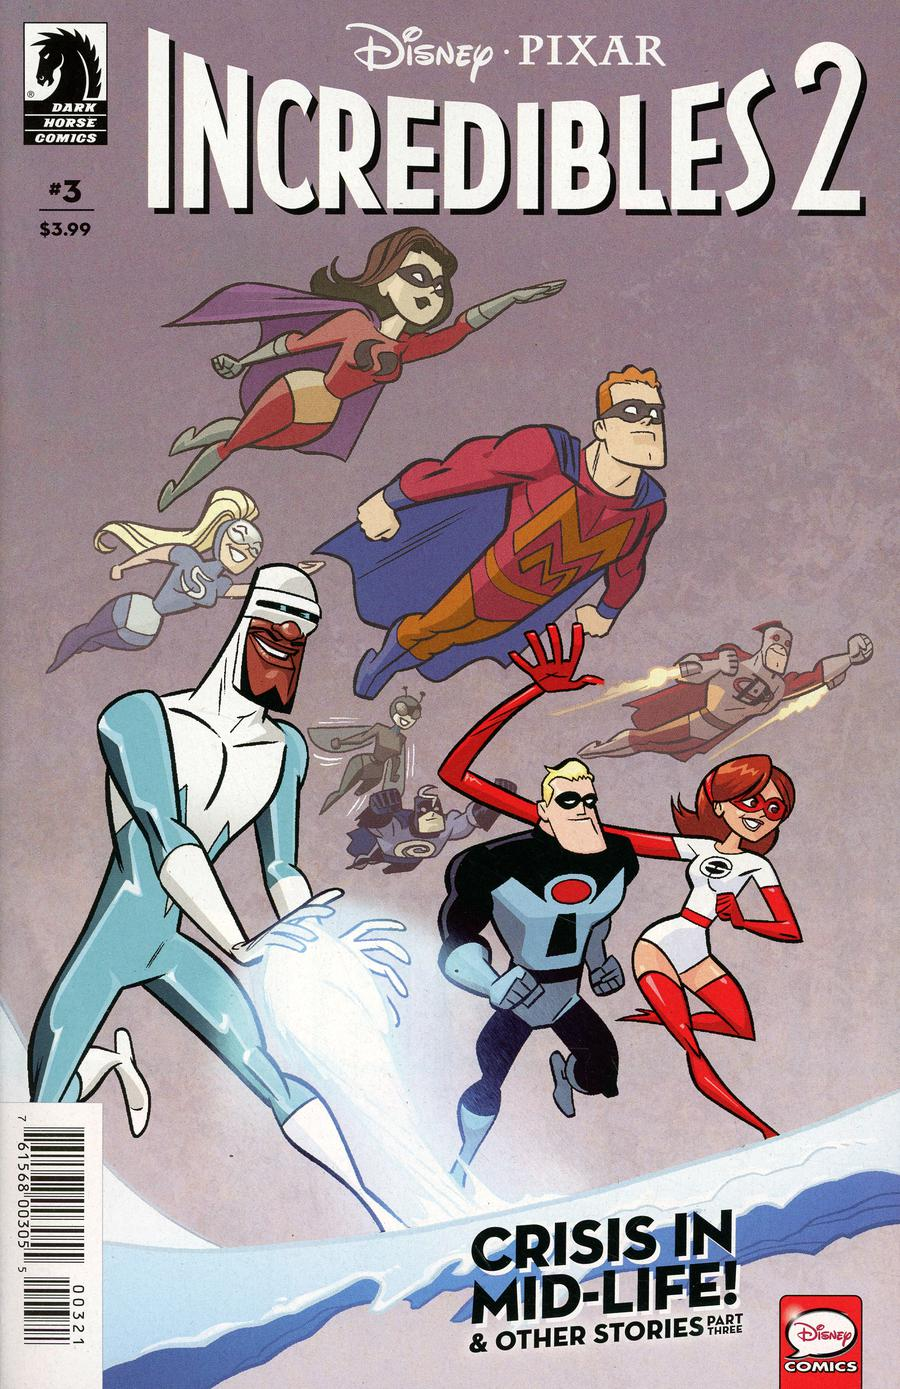 Disney Pixars Incredibles 2 Crisis In Mid-Life & Other Stories #3 Cover B Variant J Bone Cover